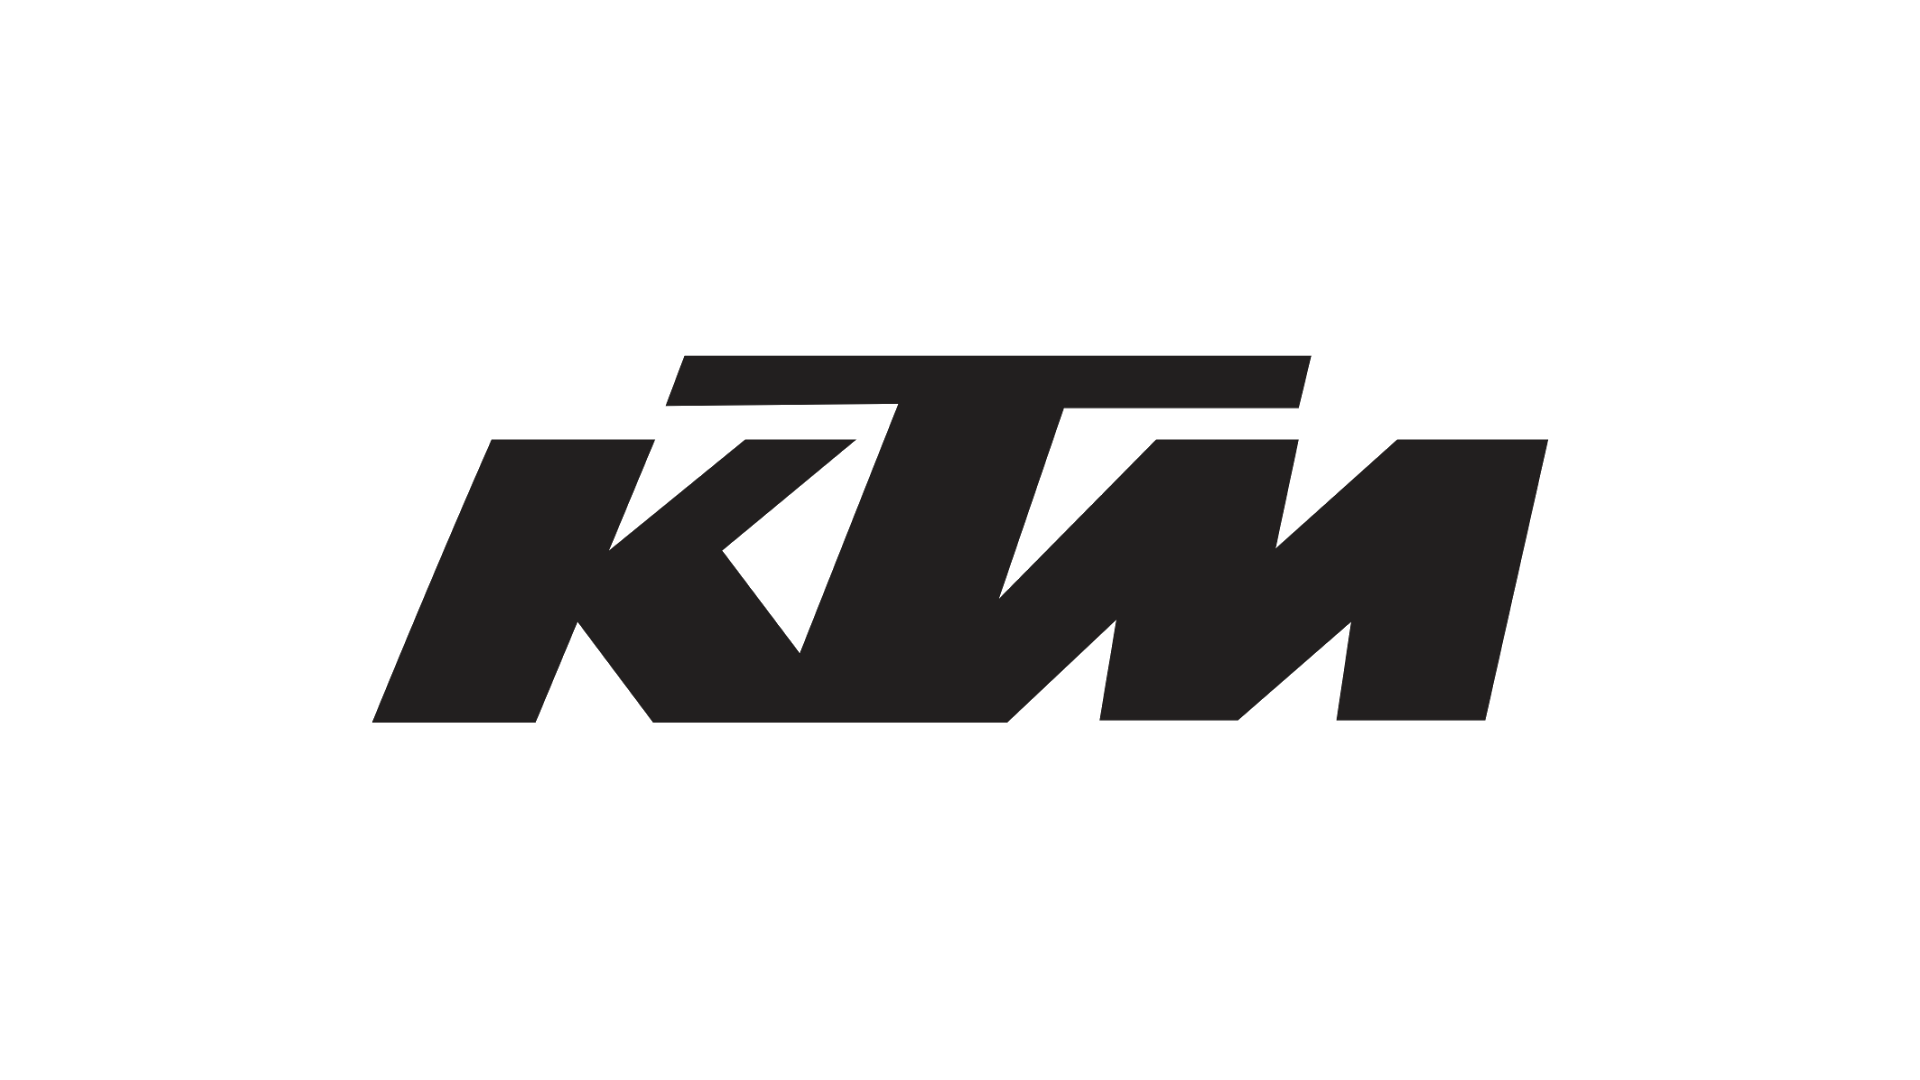 KTM for sale in the Pompano Beach, FL area. Get the best drive out price on KTM and compare.